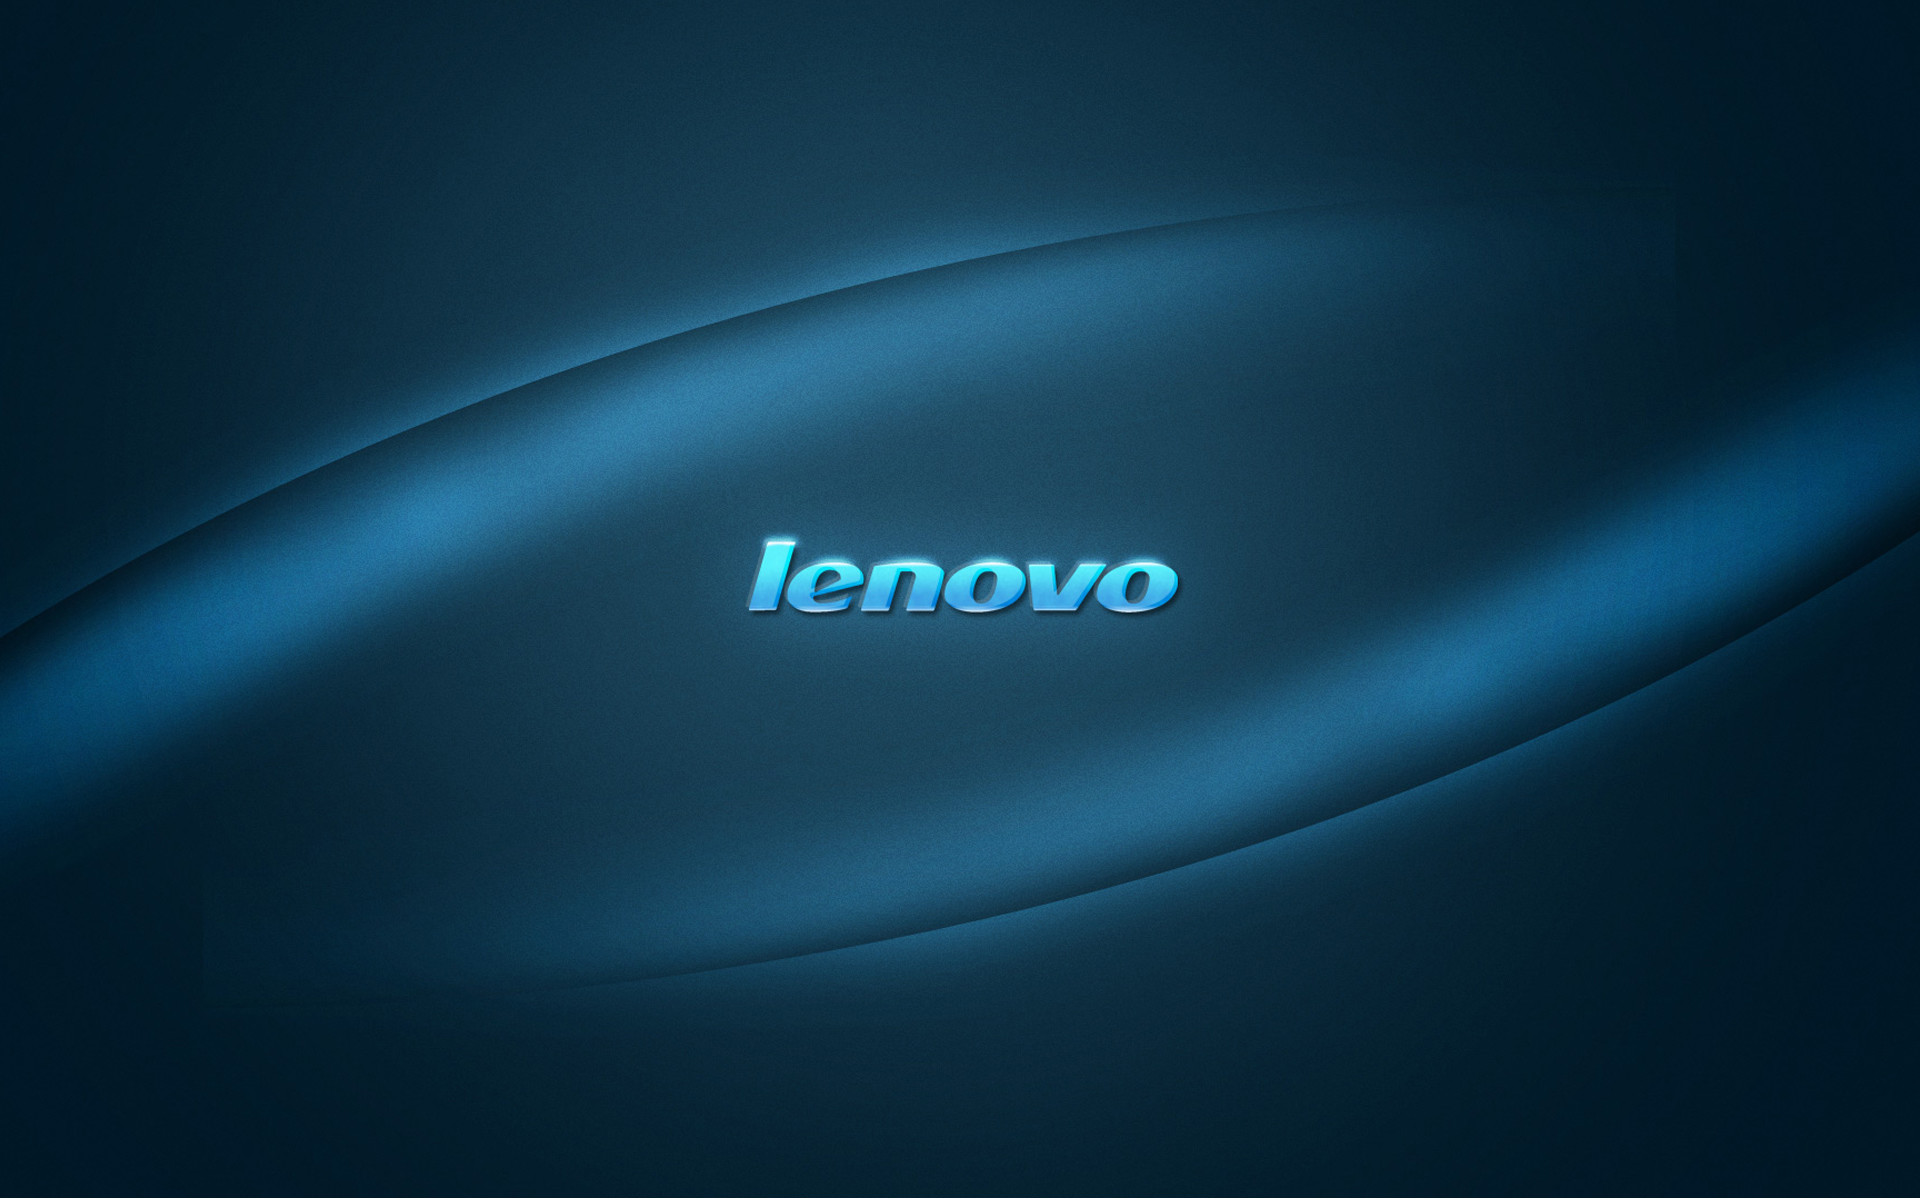 lenovo 1366x768 wallpapers 71 images